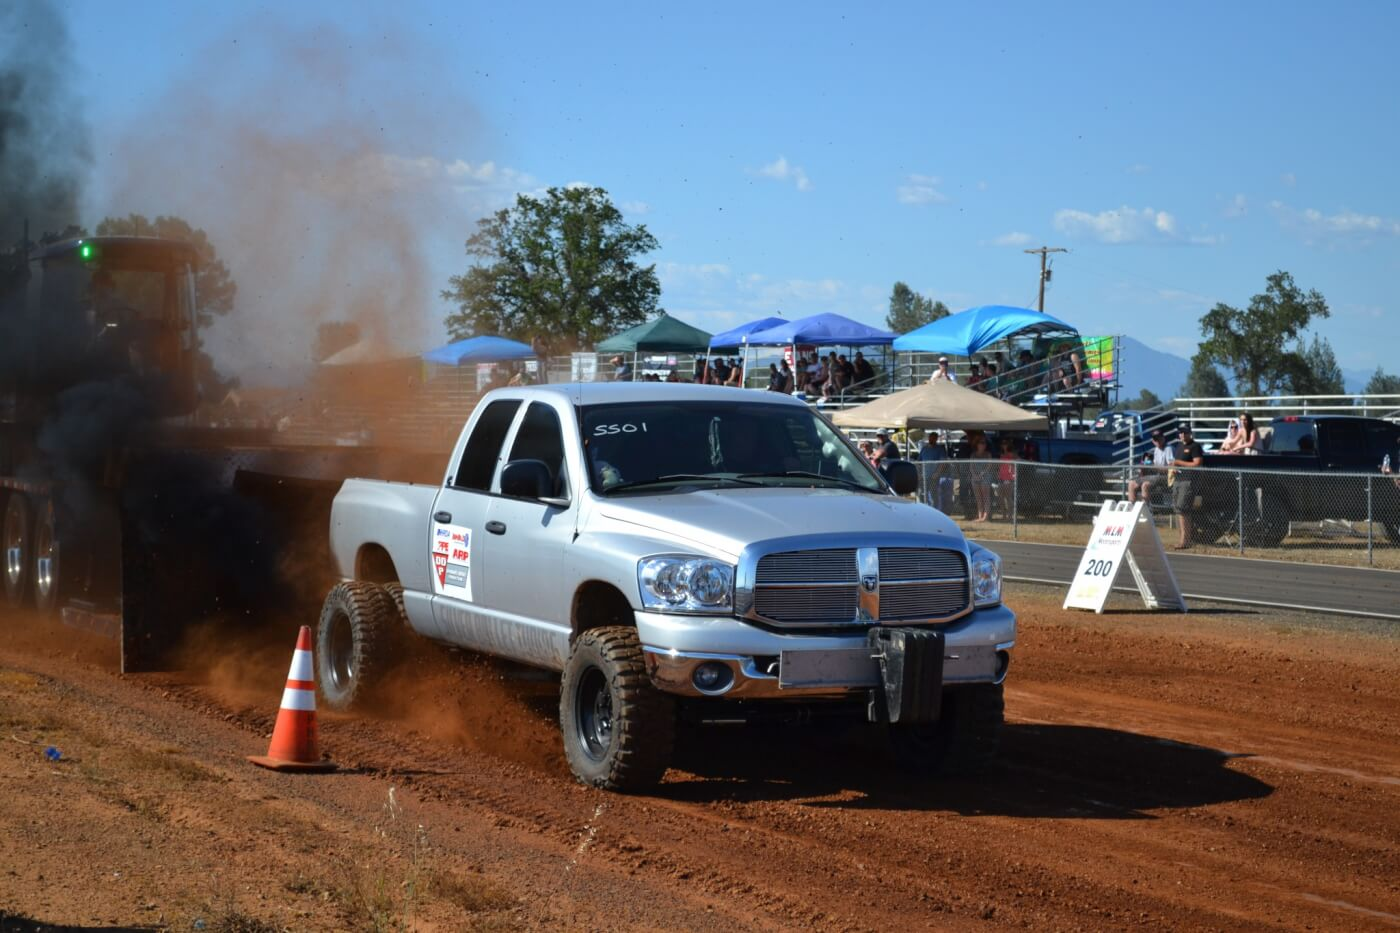 Perhaps the most impressive performance of the pull was put in by Les Szmidt, who used nearly 1,000 horsepower on a 2.6-inch charger to motivate his Dodge to a 338-foot pull and past the rest of the field by a good margin.